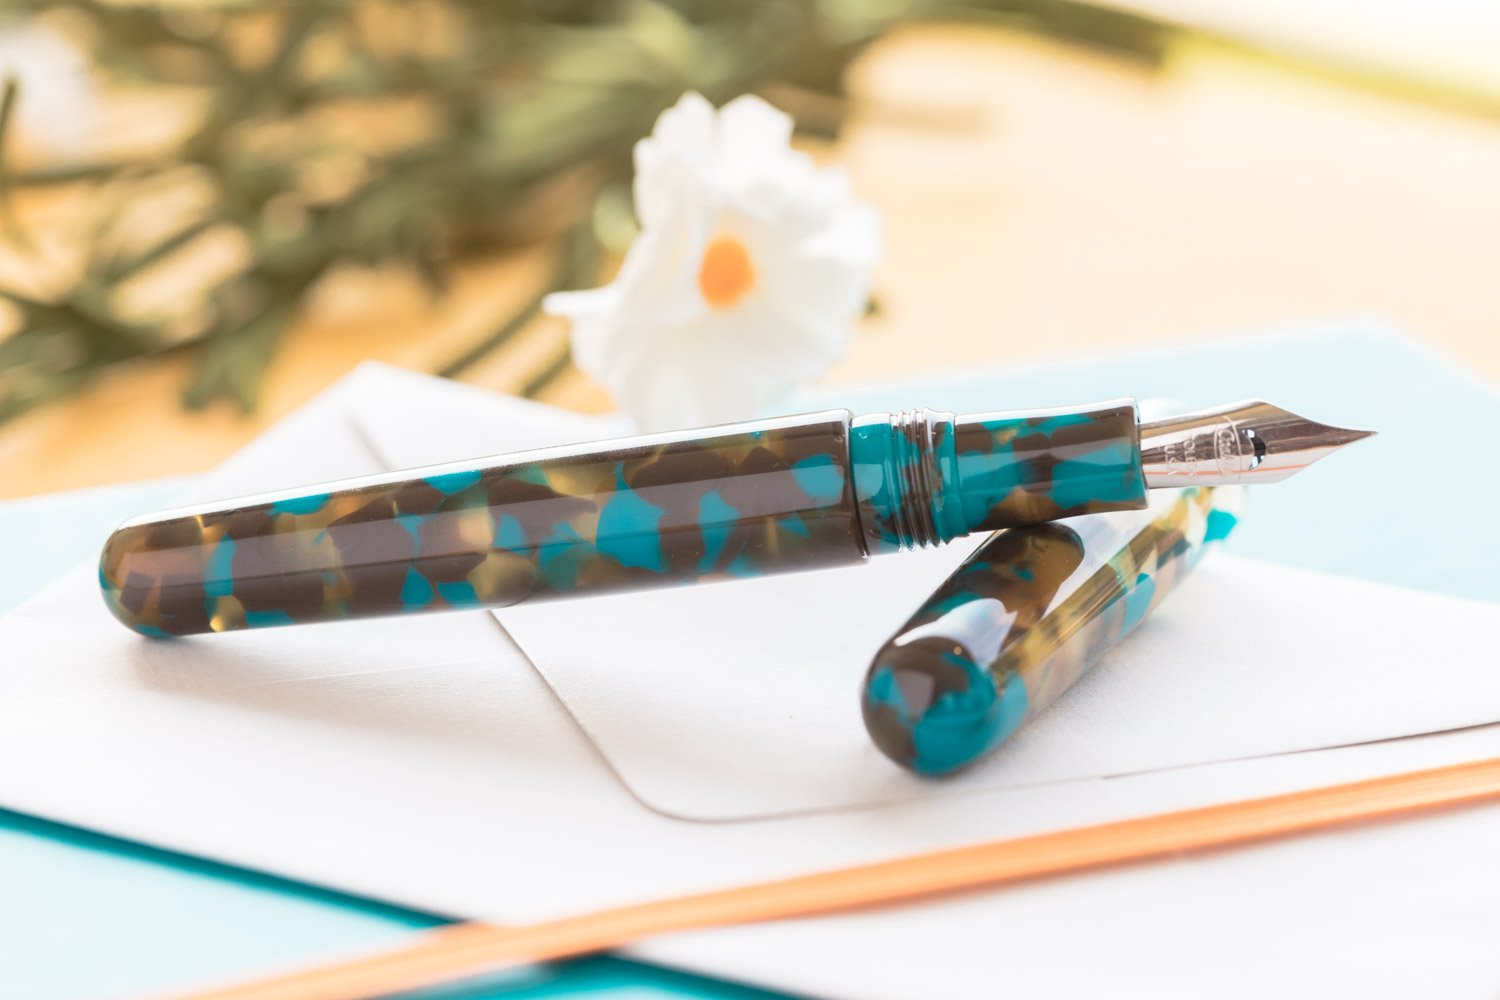 Conklin All American Fountain Pen - Southwest Turquoise